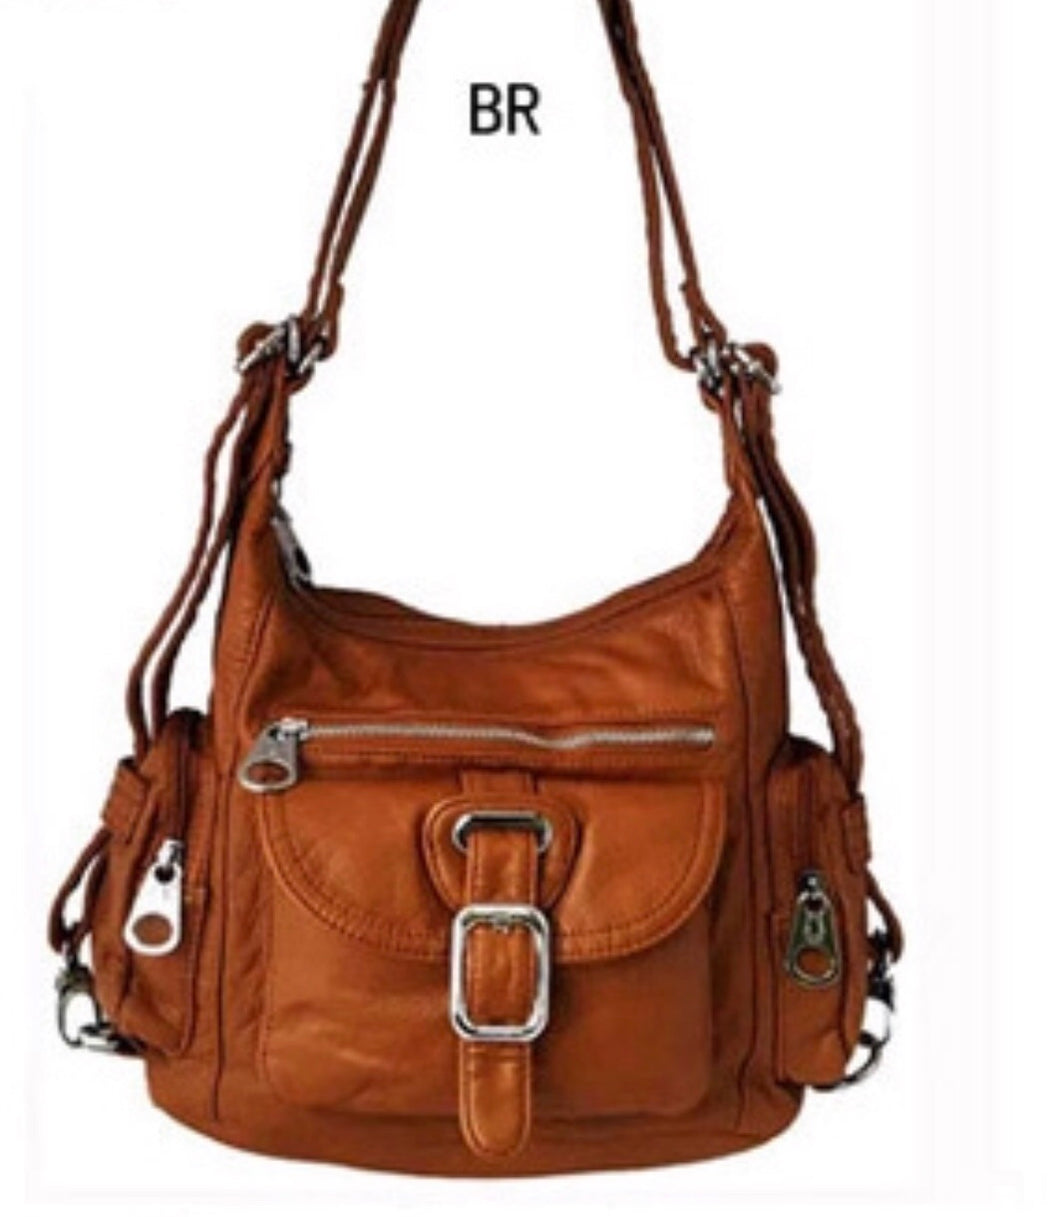 Brown small 3 in 1 style backpack purse